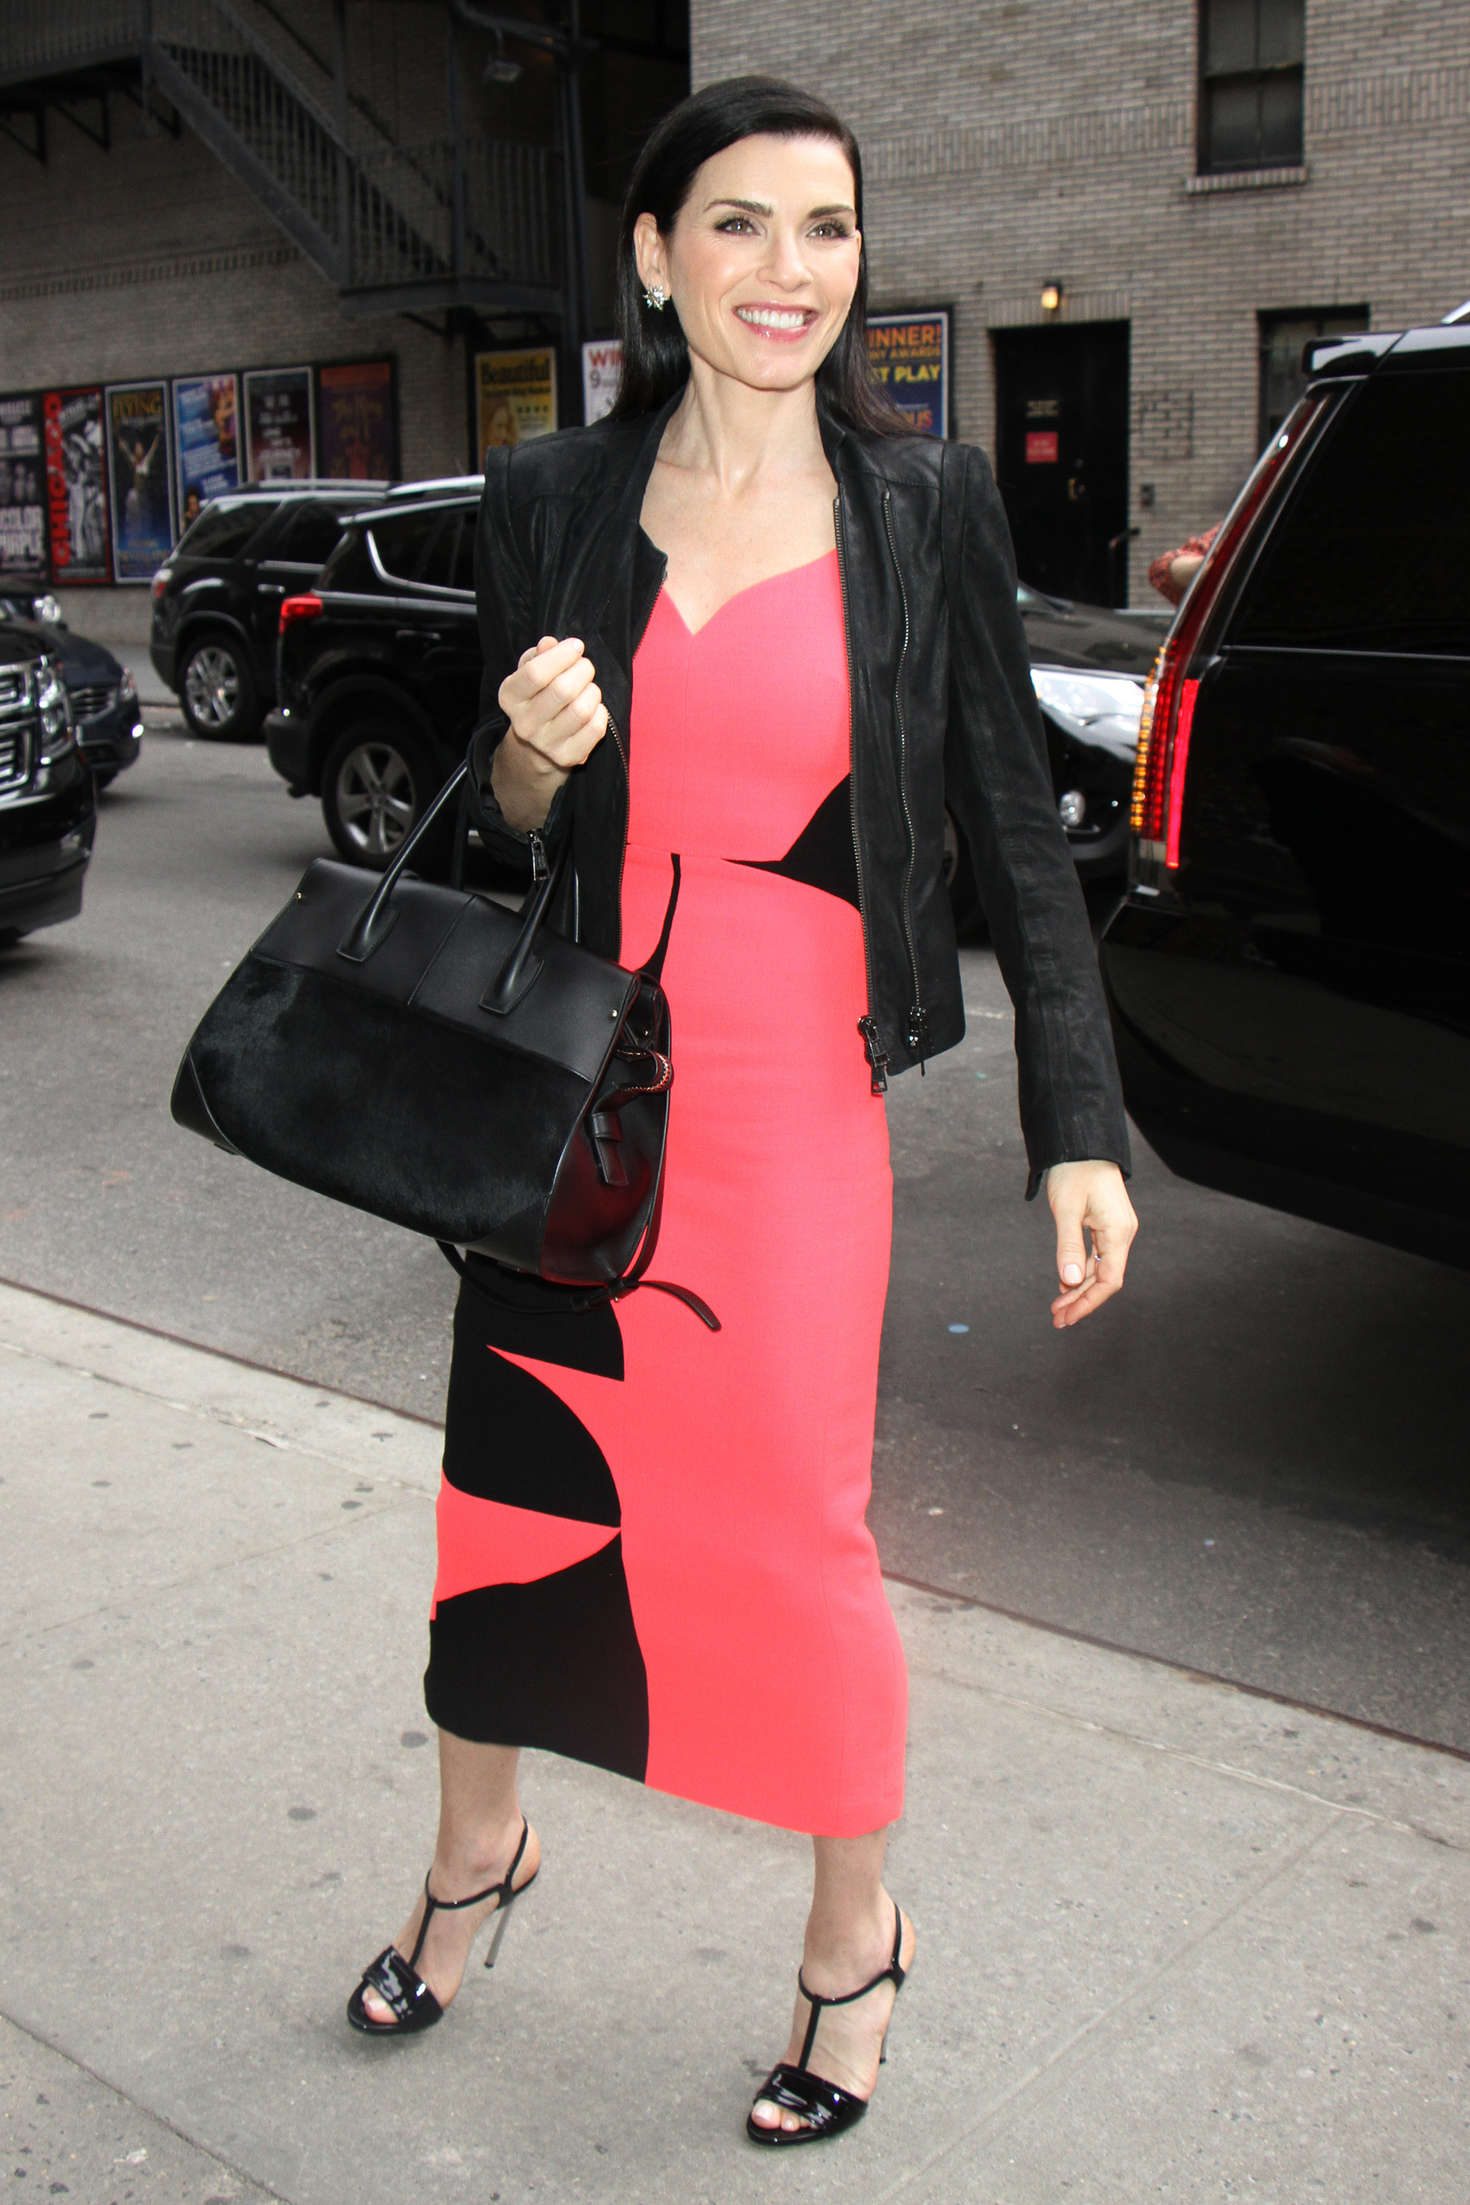 Julianna Margulies visits The Late Show with Stephen Colbert in New York